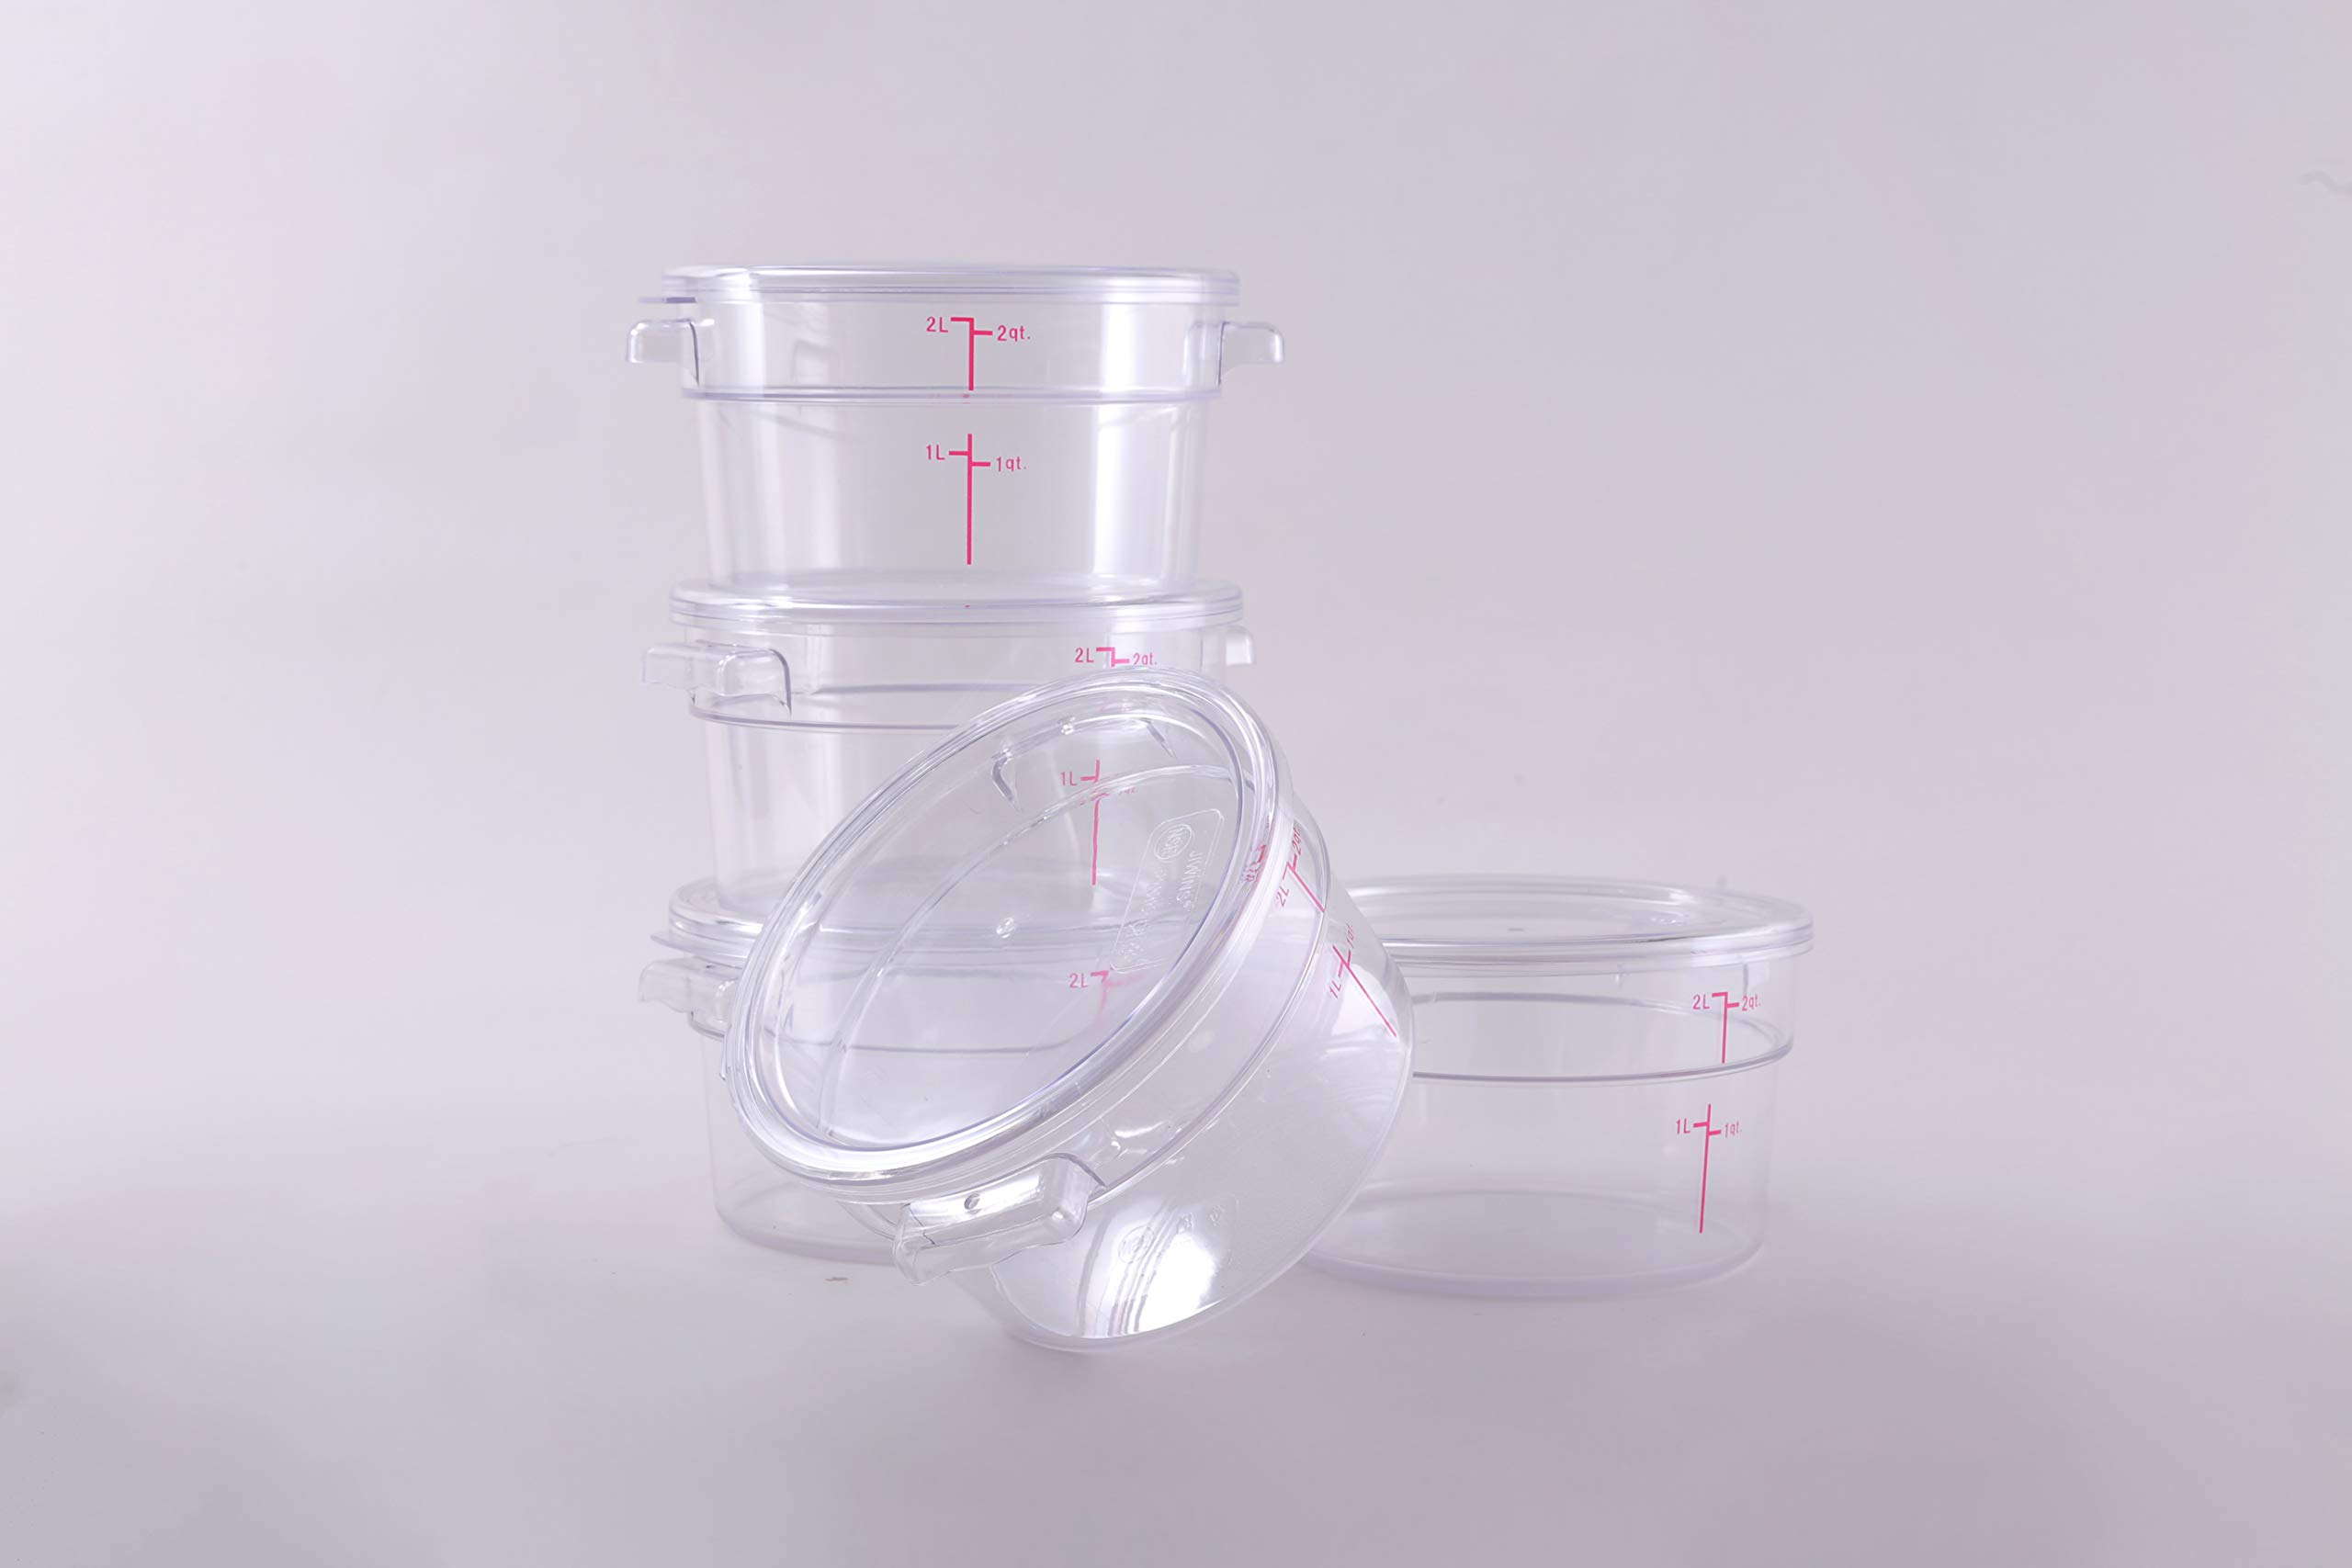 Hakka 2 Qt Commercial Grade Round Food Storage Containers with Lids,Polycarbonate,Clear - Case of 5 by HAKKA FOOD PROCESSING (Image #3)